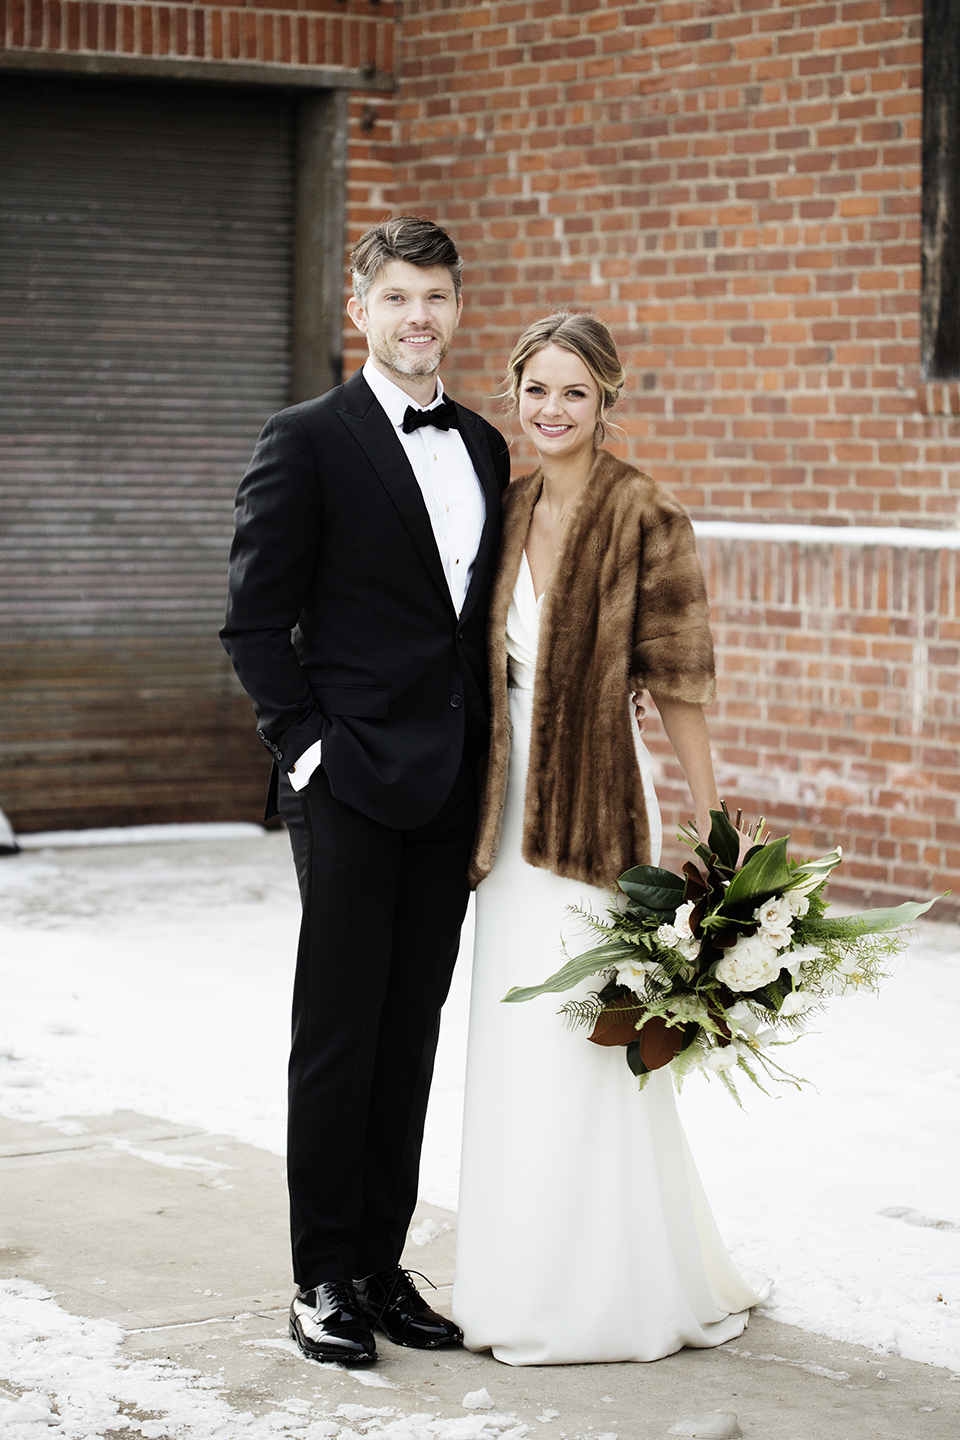 Paikka Wedding St. Paul, MN | Photography by Photogen Inc. | Eliesa Johnson | Based in Minneapolis, Minnesota